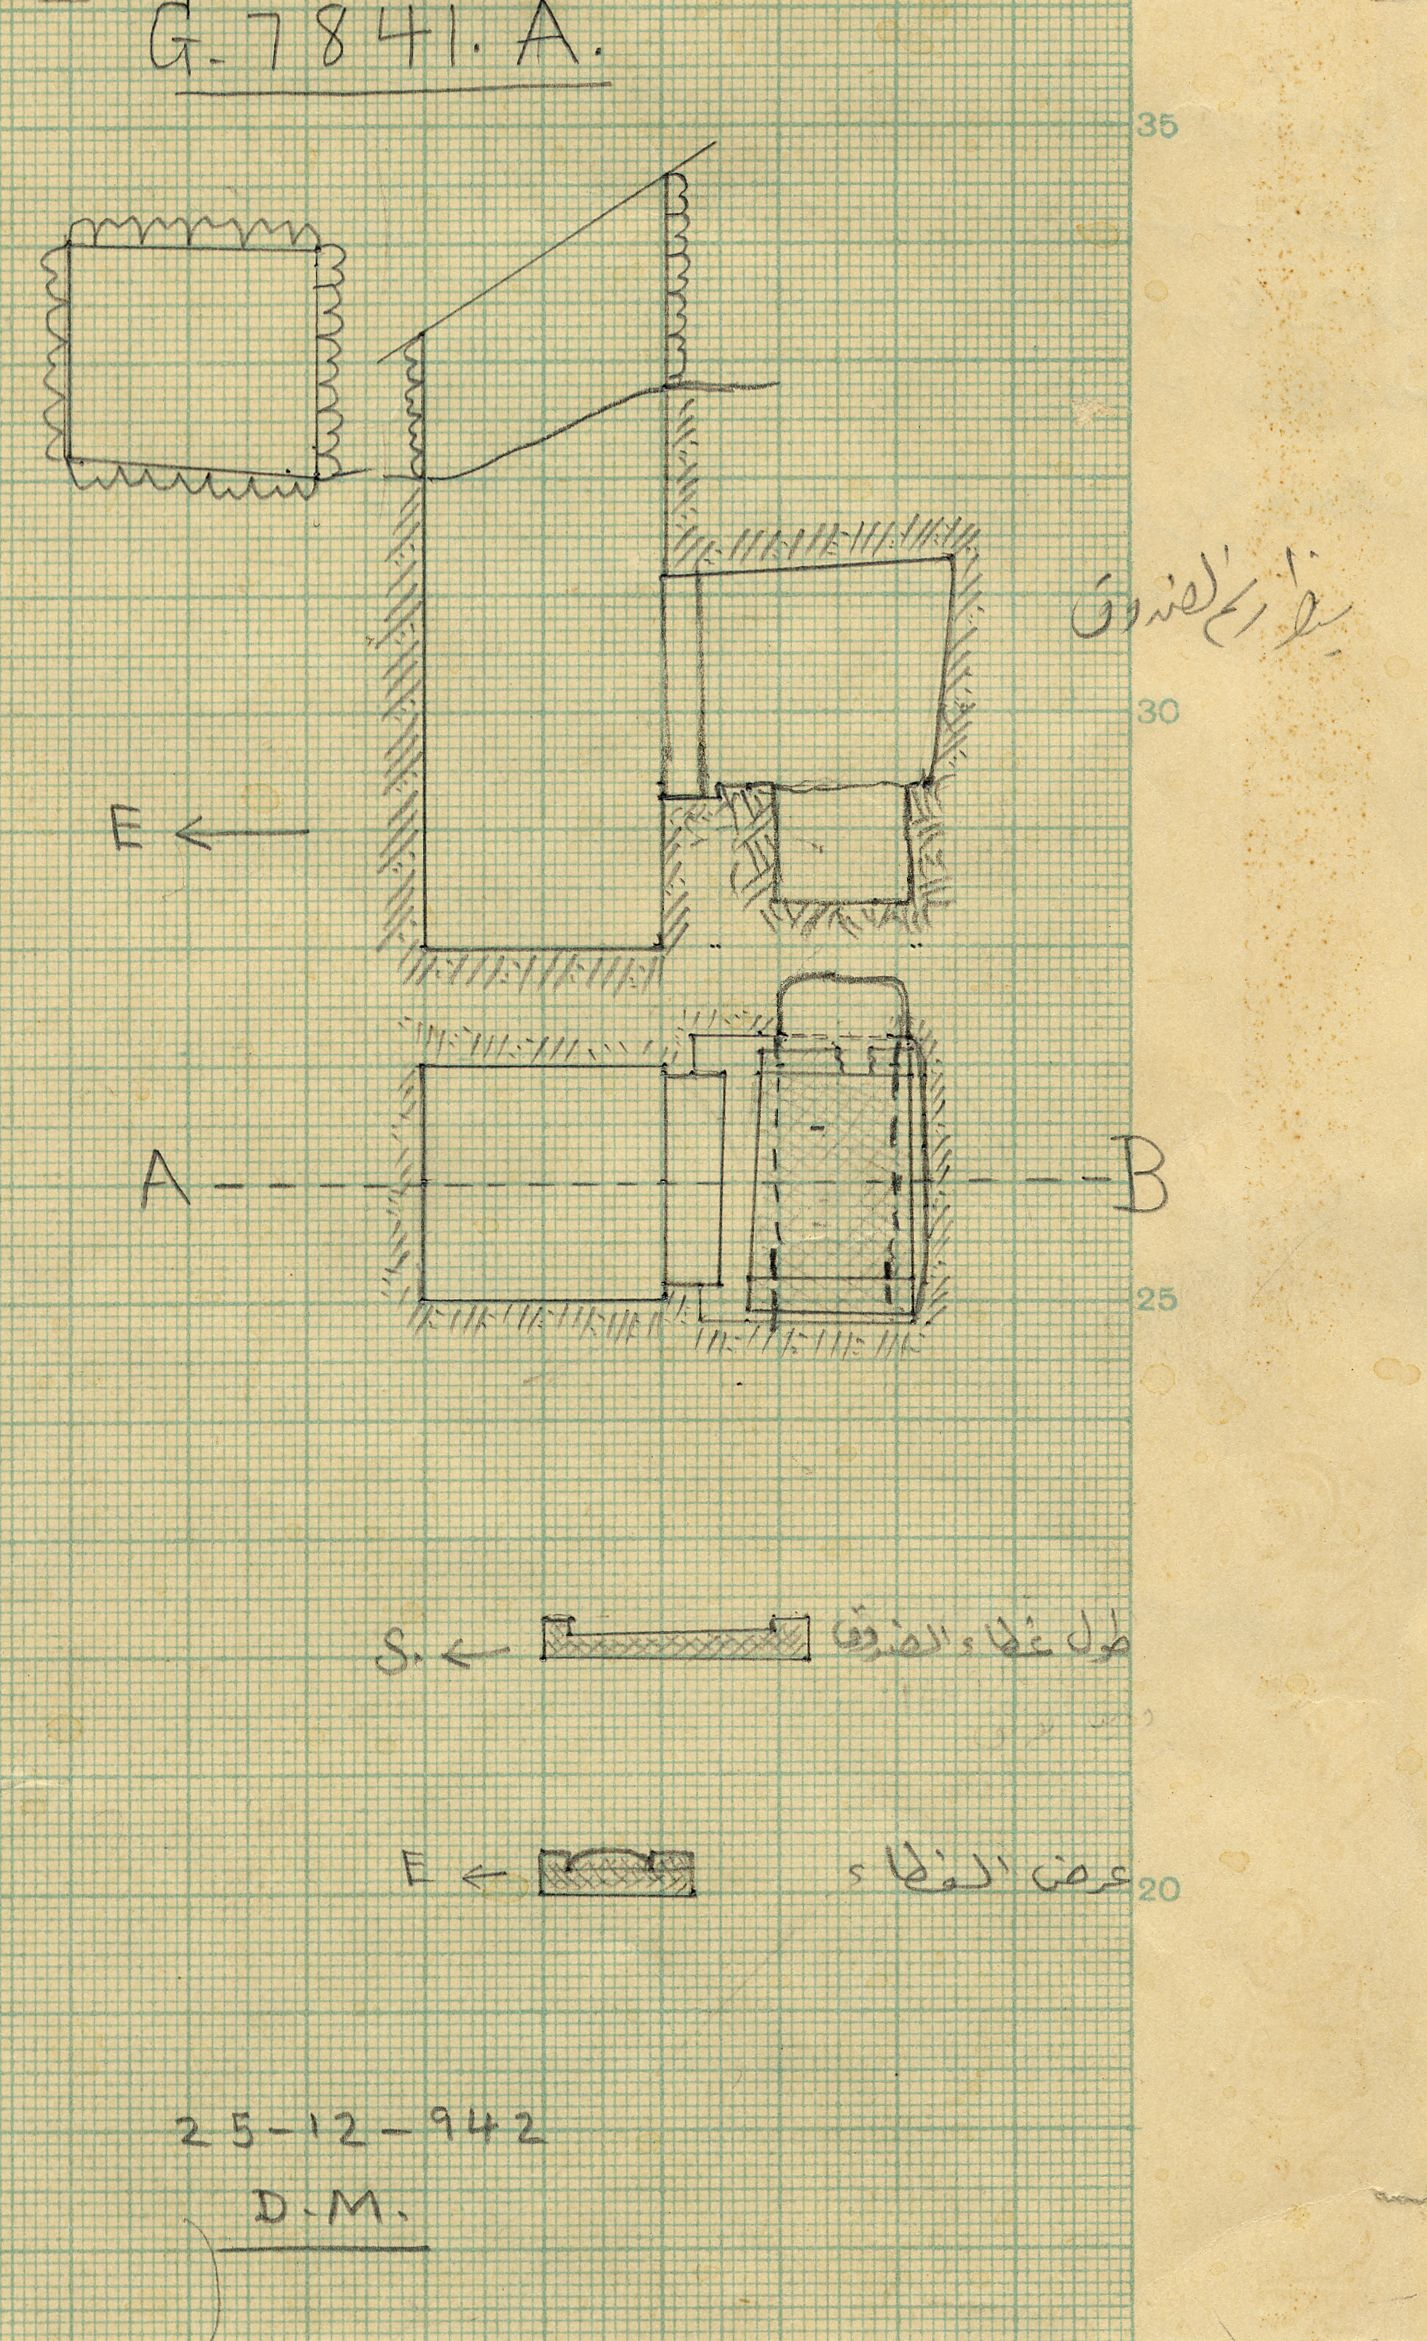 Maps and plans: G 7841, Shaft A